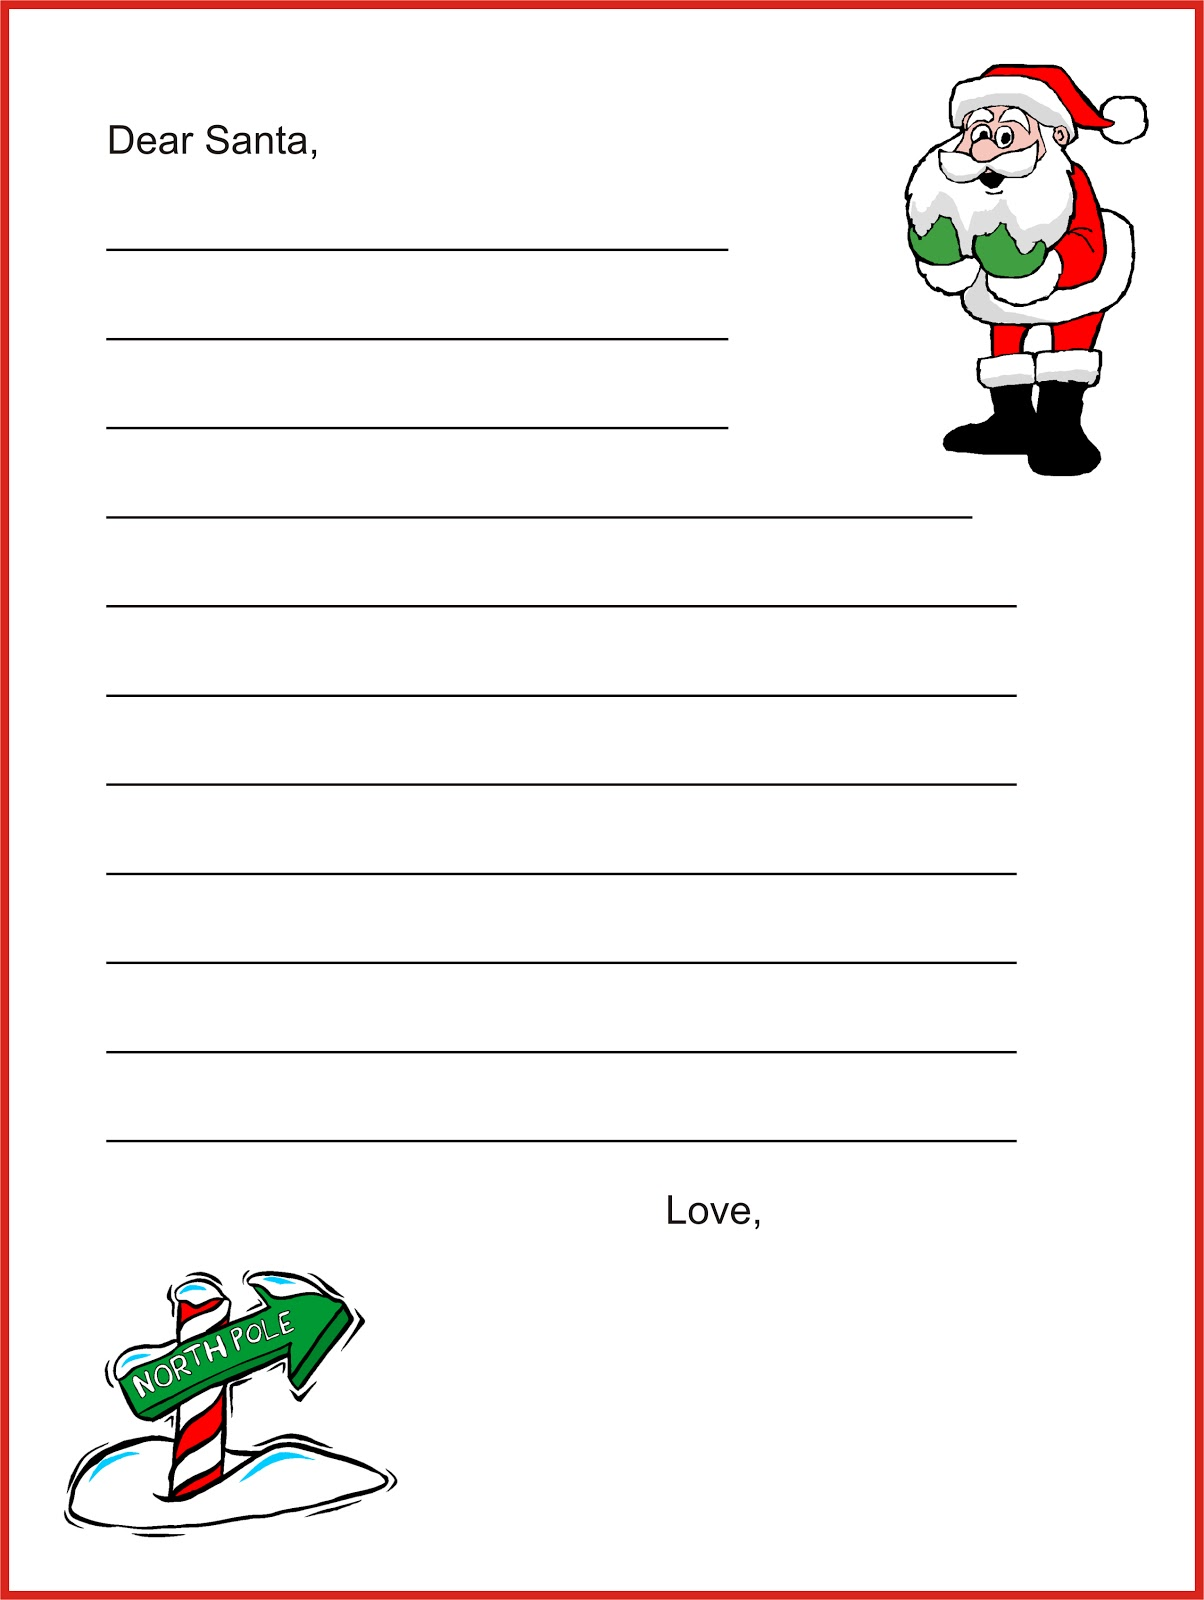 ... letters to santa while the larger one is more of a postcard to santa